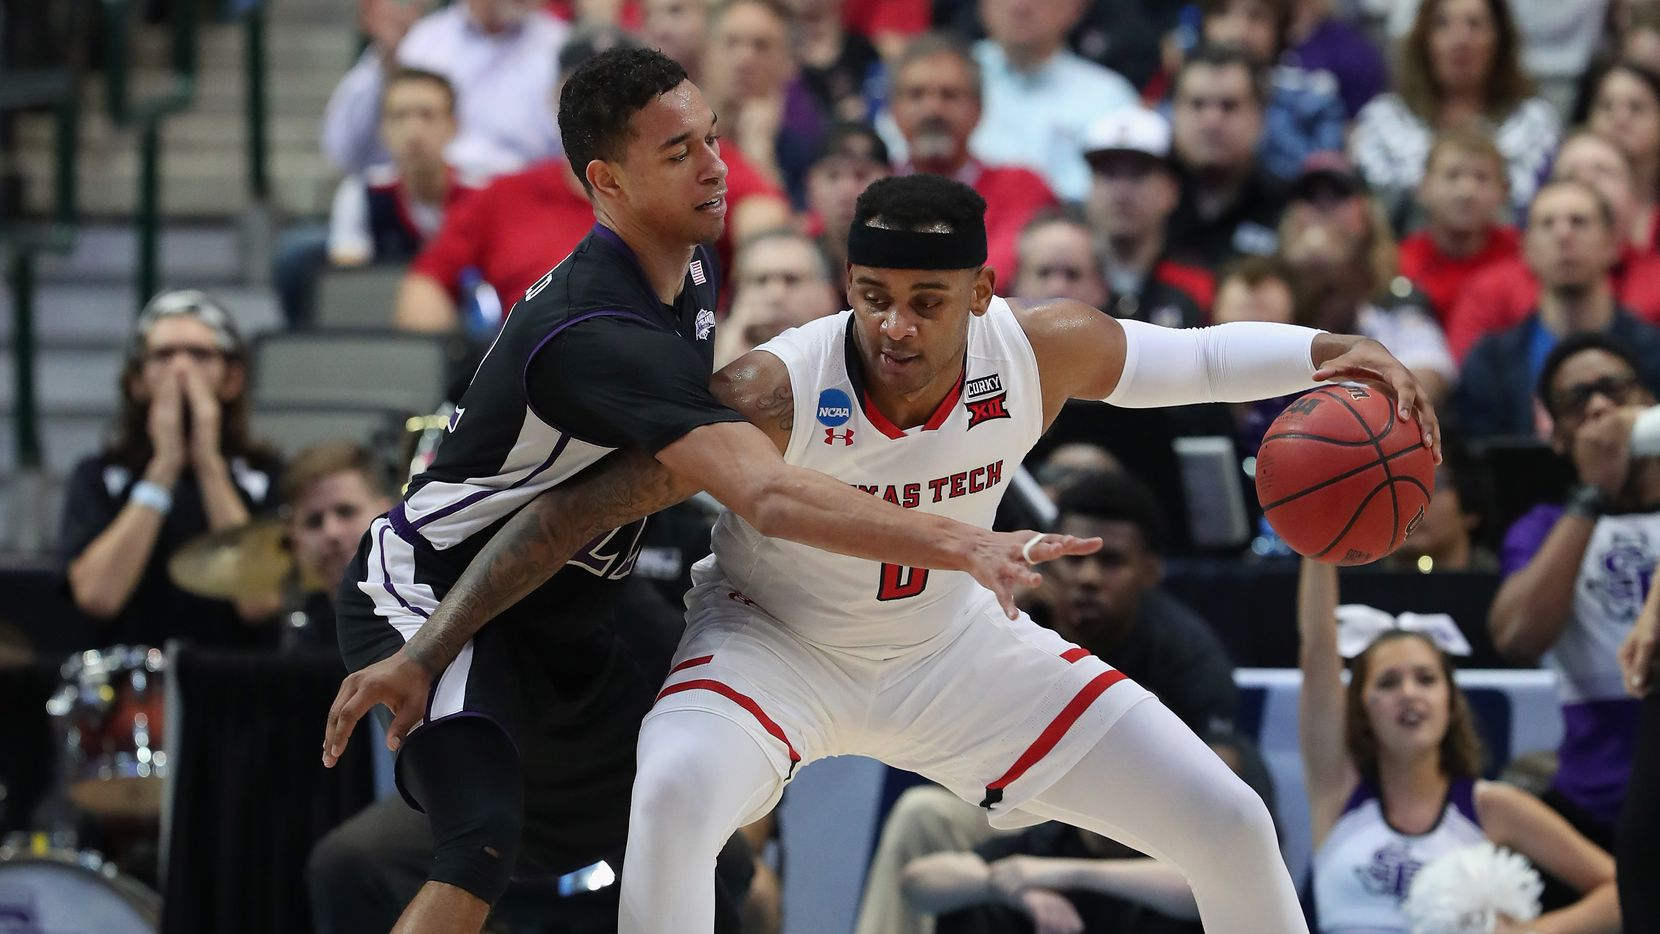 DALLAS, TX - MARCH 15:  Tommy Hamilton IV #0 of the Texas Tech Red Raiders drives against TJ Holyfield #22 of the Stephen F. Austin Lumberjacks  in the first half in the first round of the 2018 NCAA Men's Basketball Tournament at American Airlines Center on March 15, 2018 in Dallas, Texas.  (Photo by Tom Pennington/Getty Images)